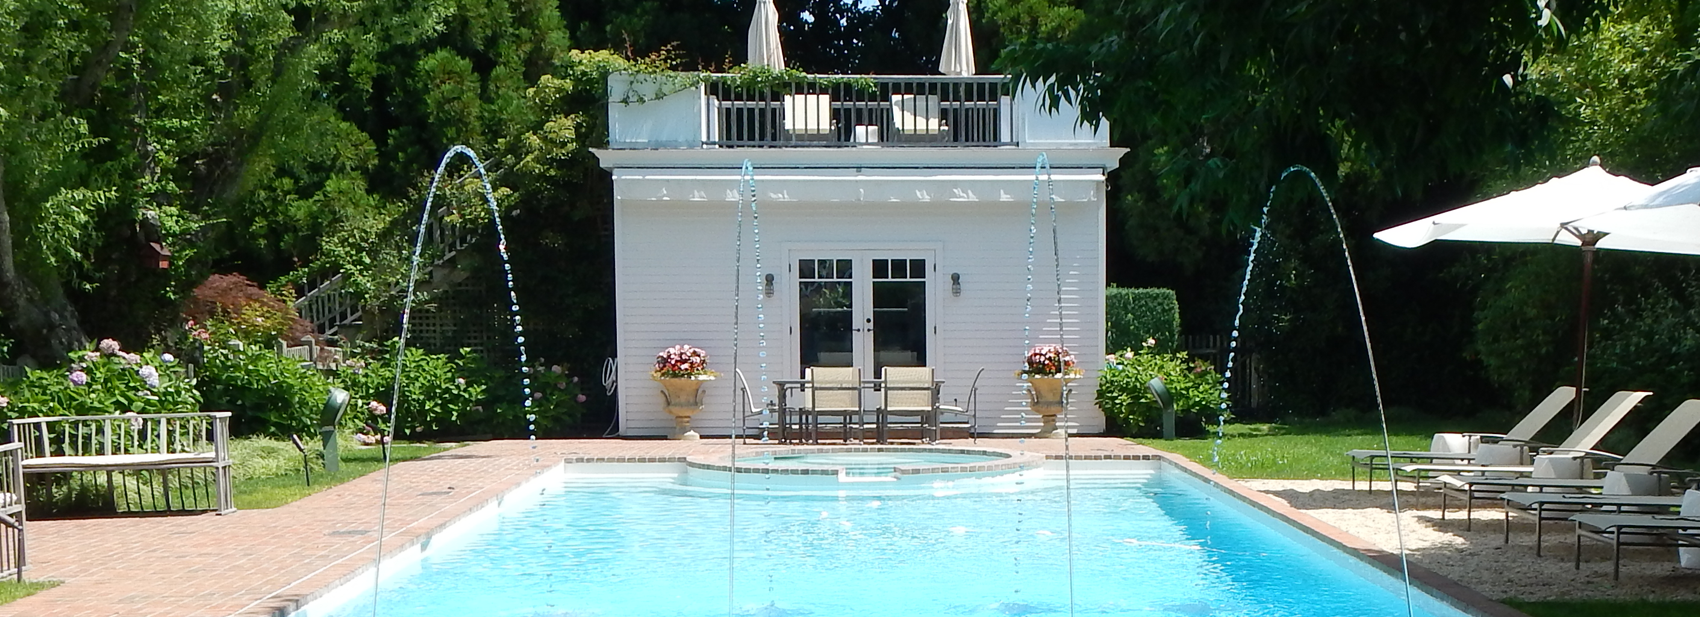 WELCOME TO KAZDIN POOLS - Kazdin Pools & Spas | Southampton, NY ...